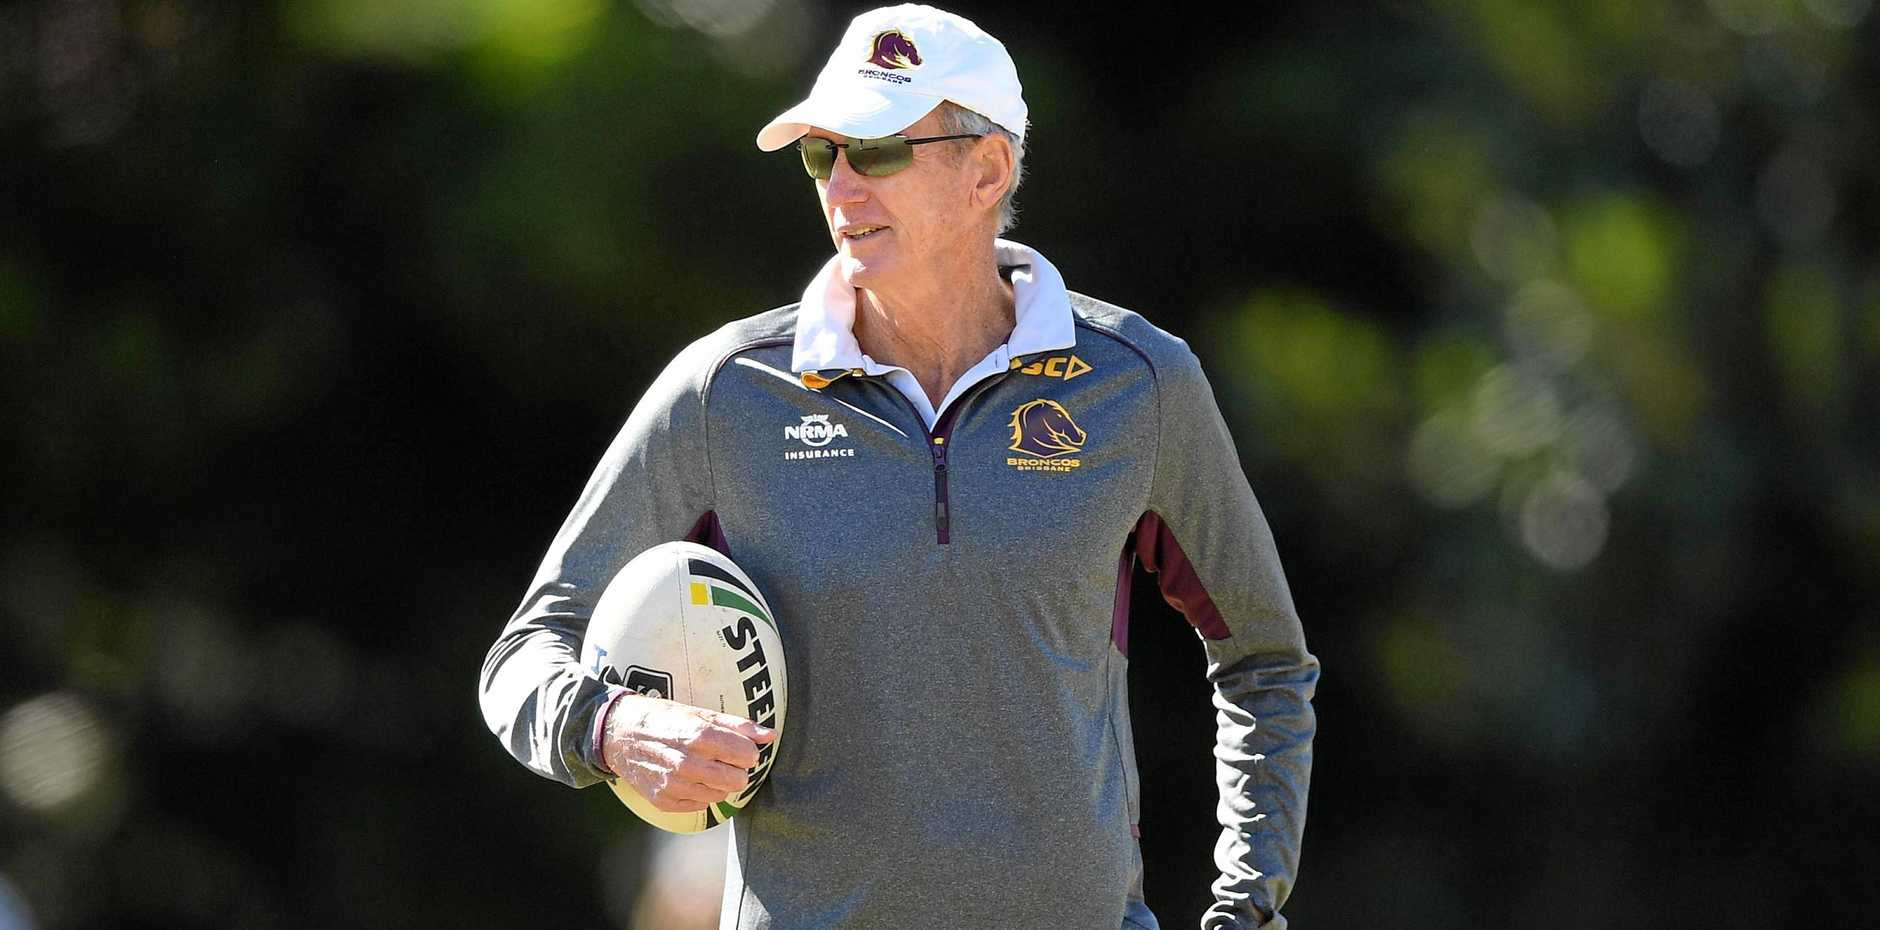 Wayne Bennett will be looking to end the Broncos' title drought.